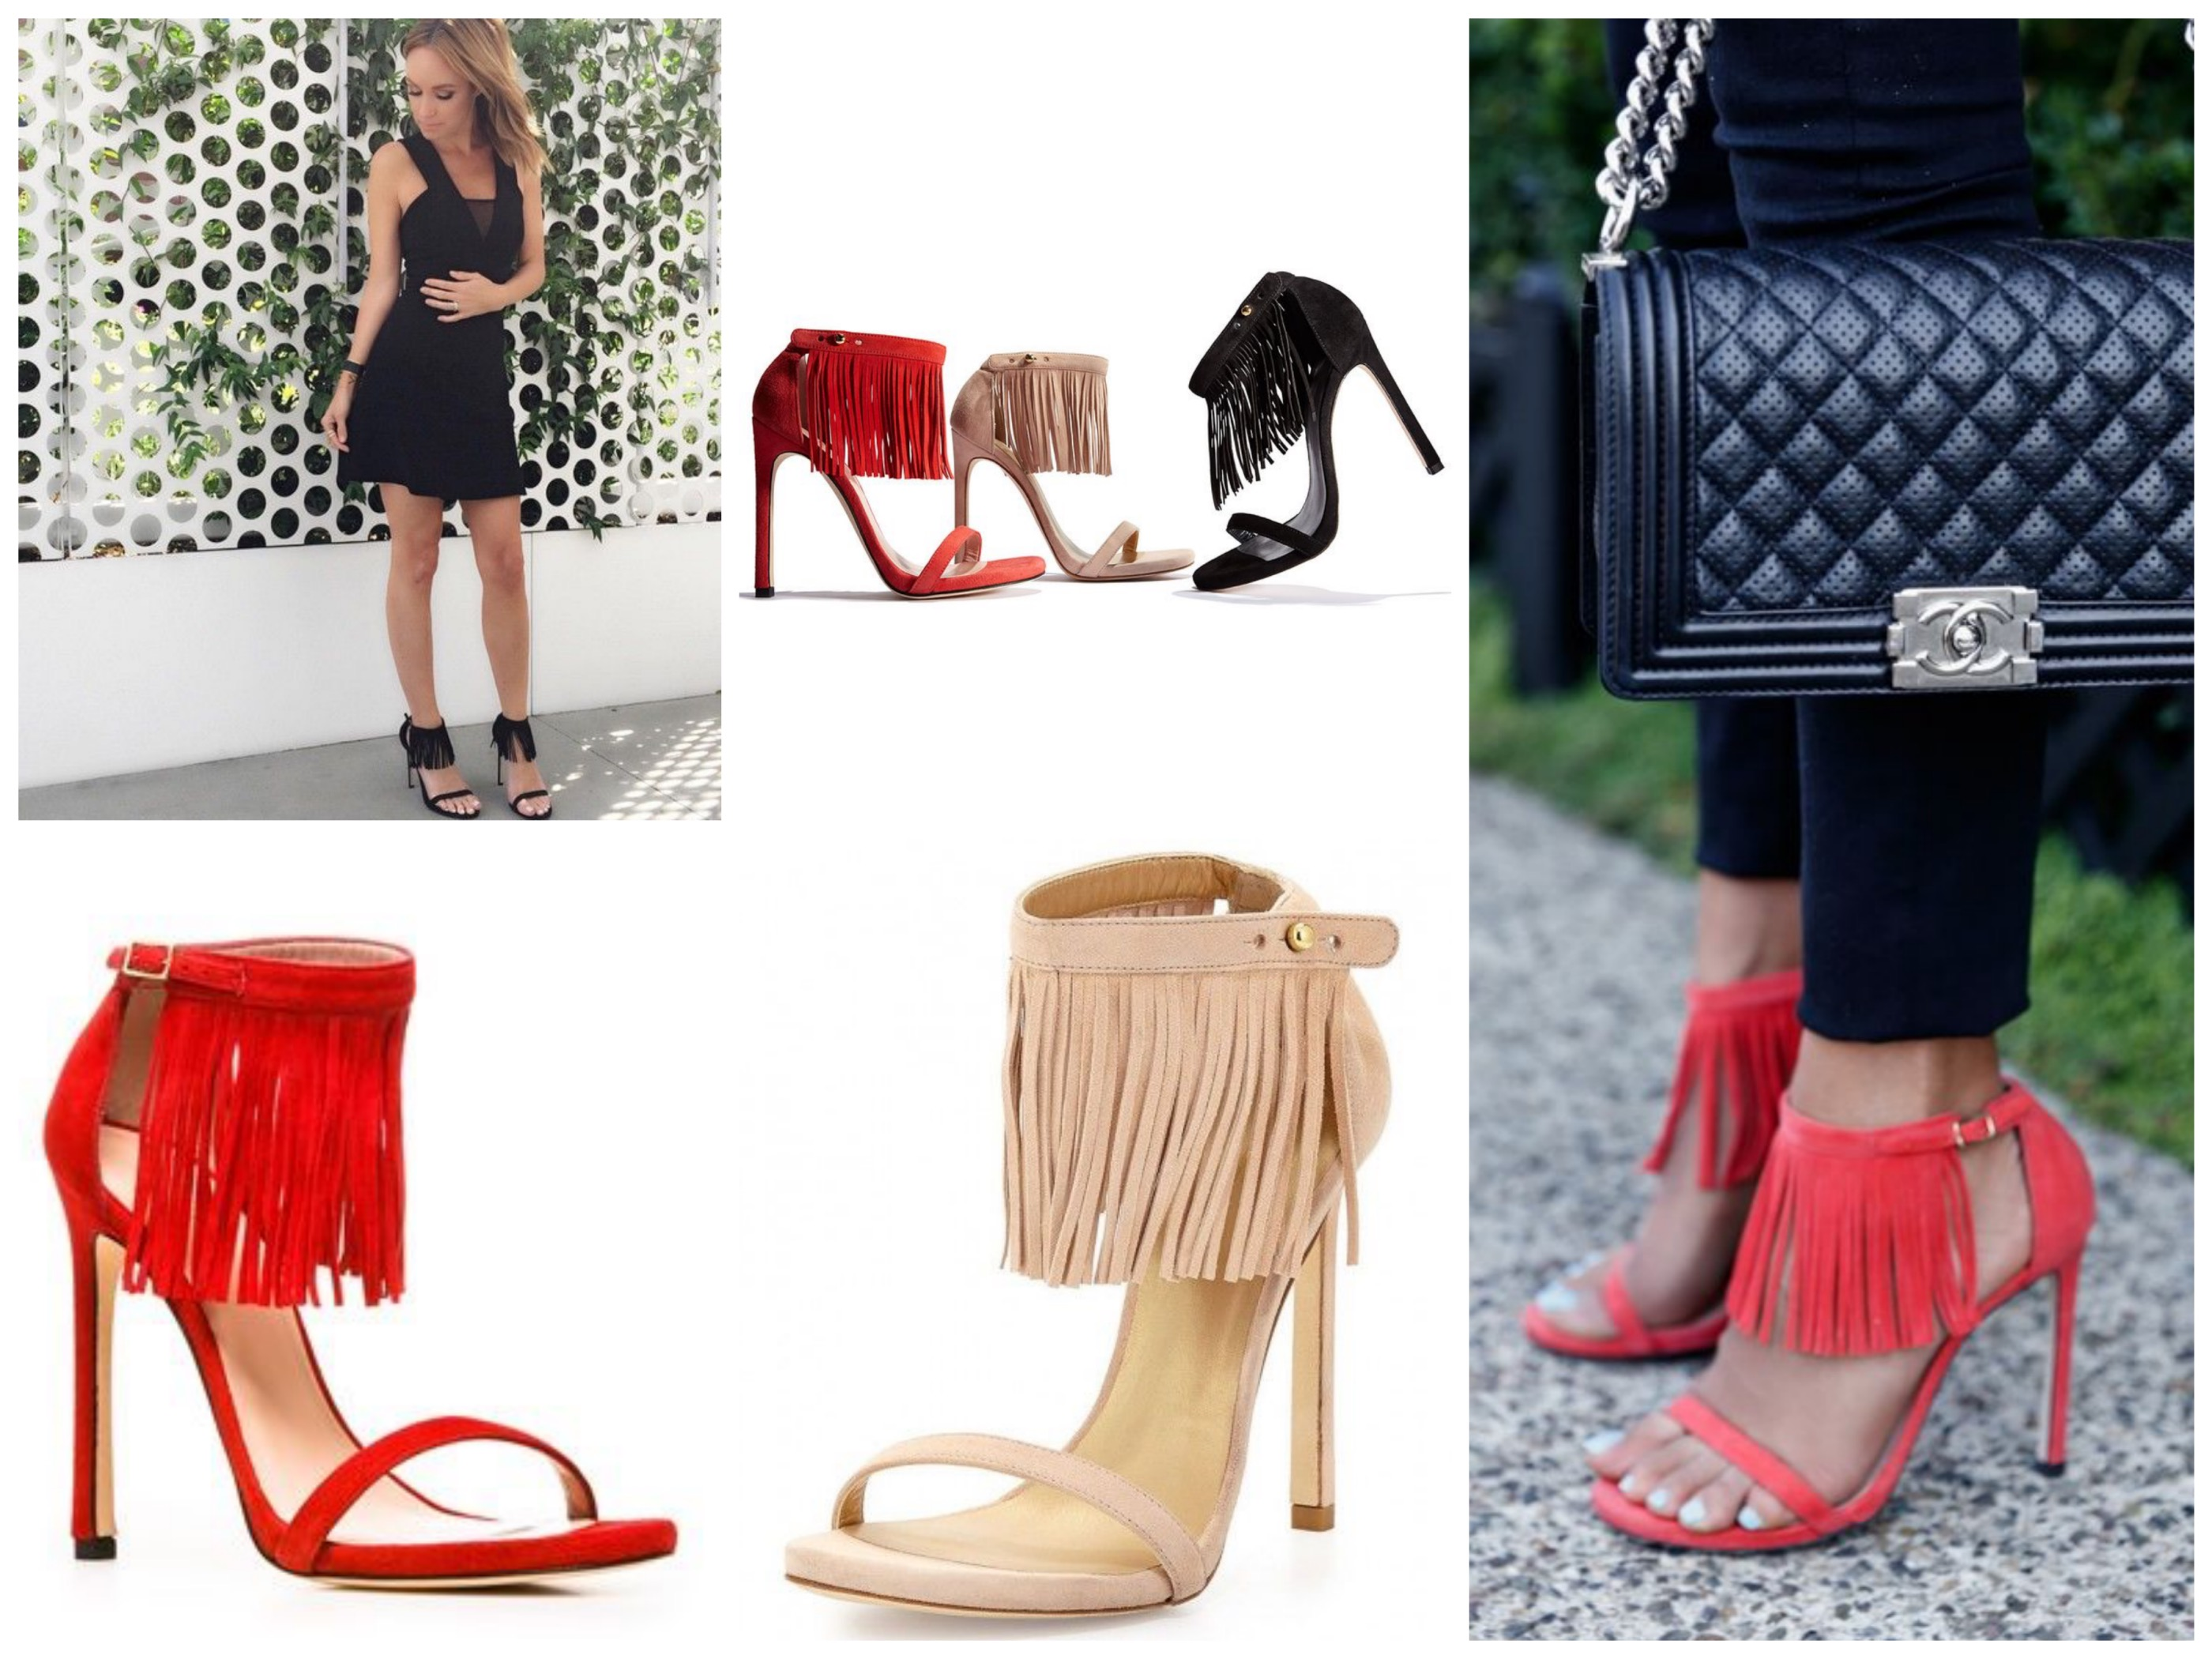 Stuart Weitzman Lovefringe Sandals